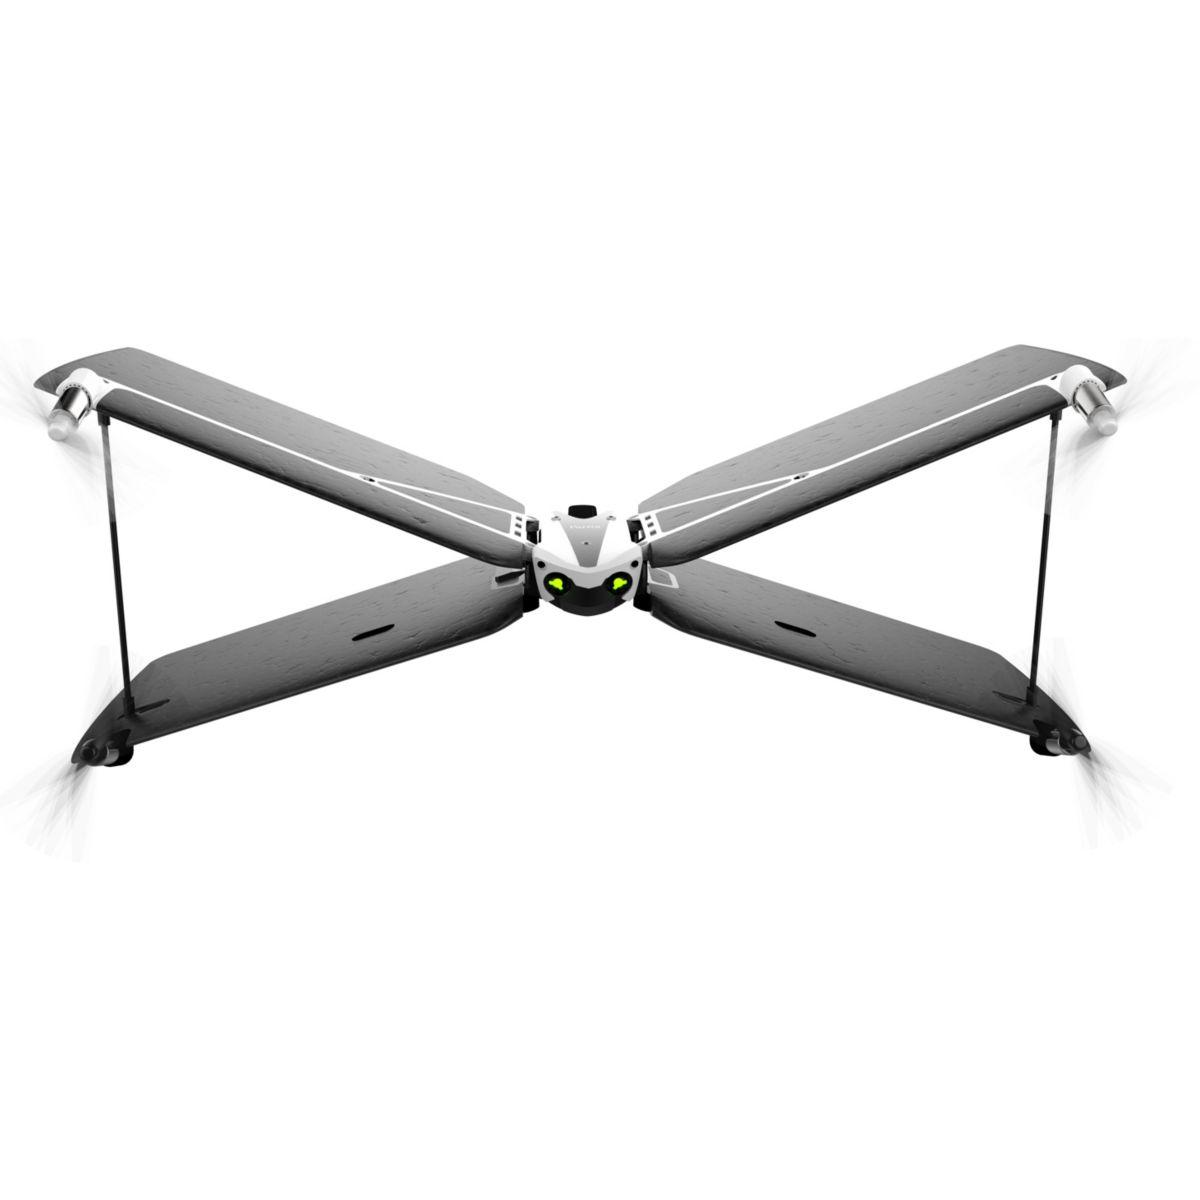 Drones parrot swing + flypad (photo)